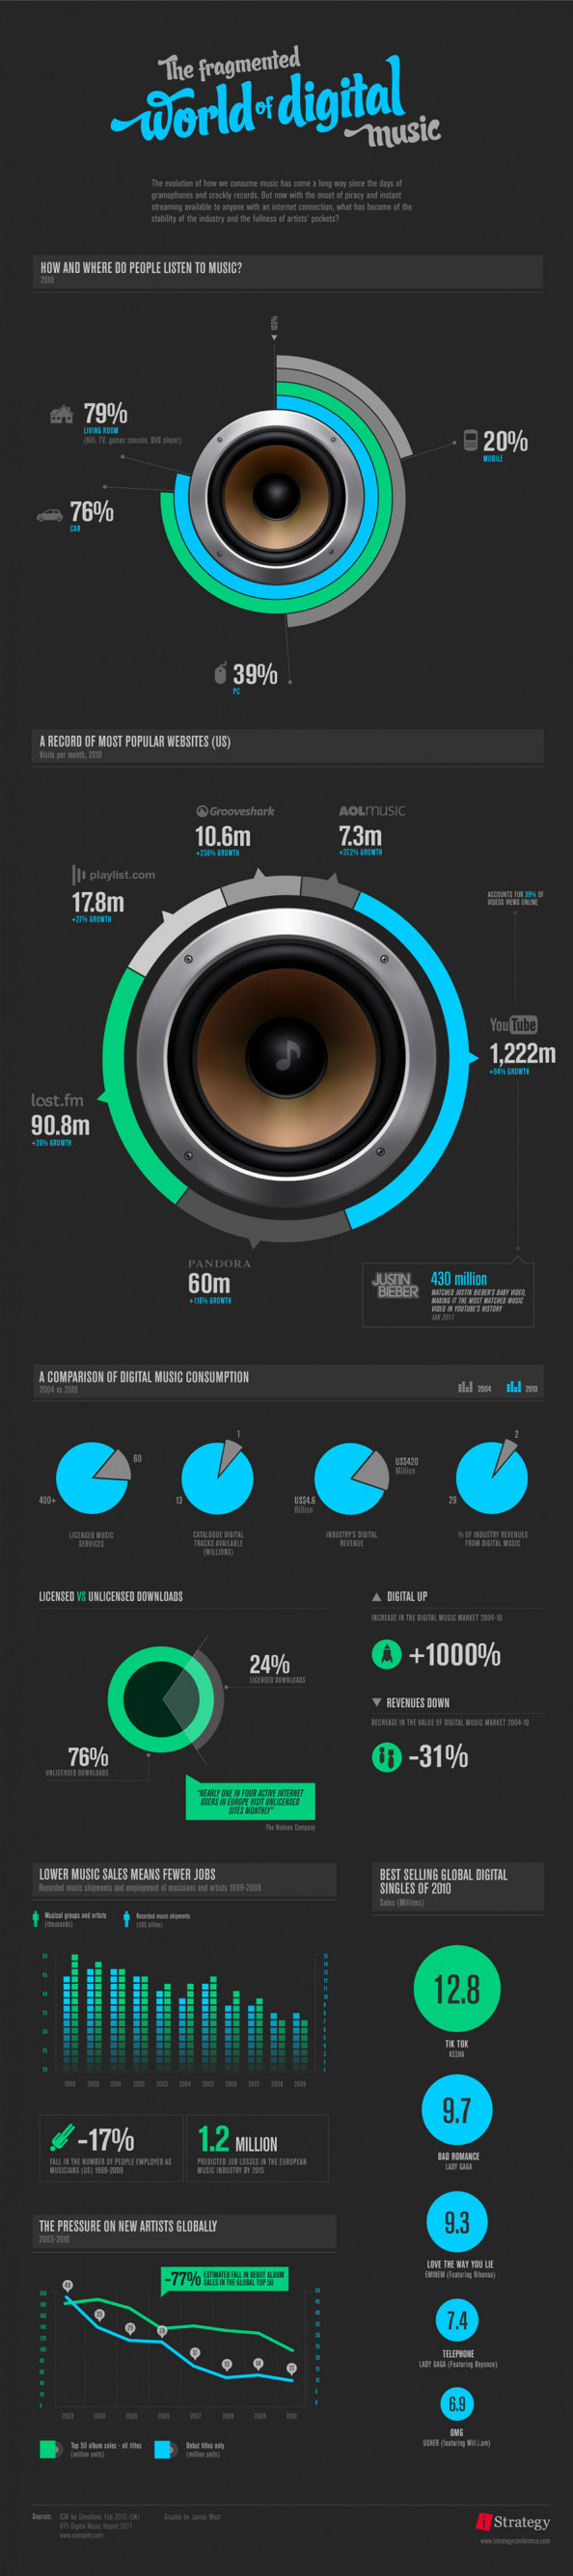 The Fragmented World of Digital Music Infographic